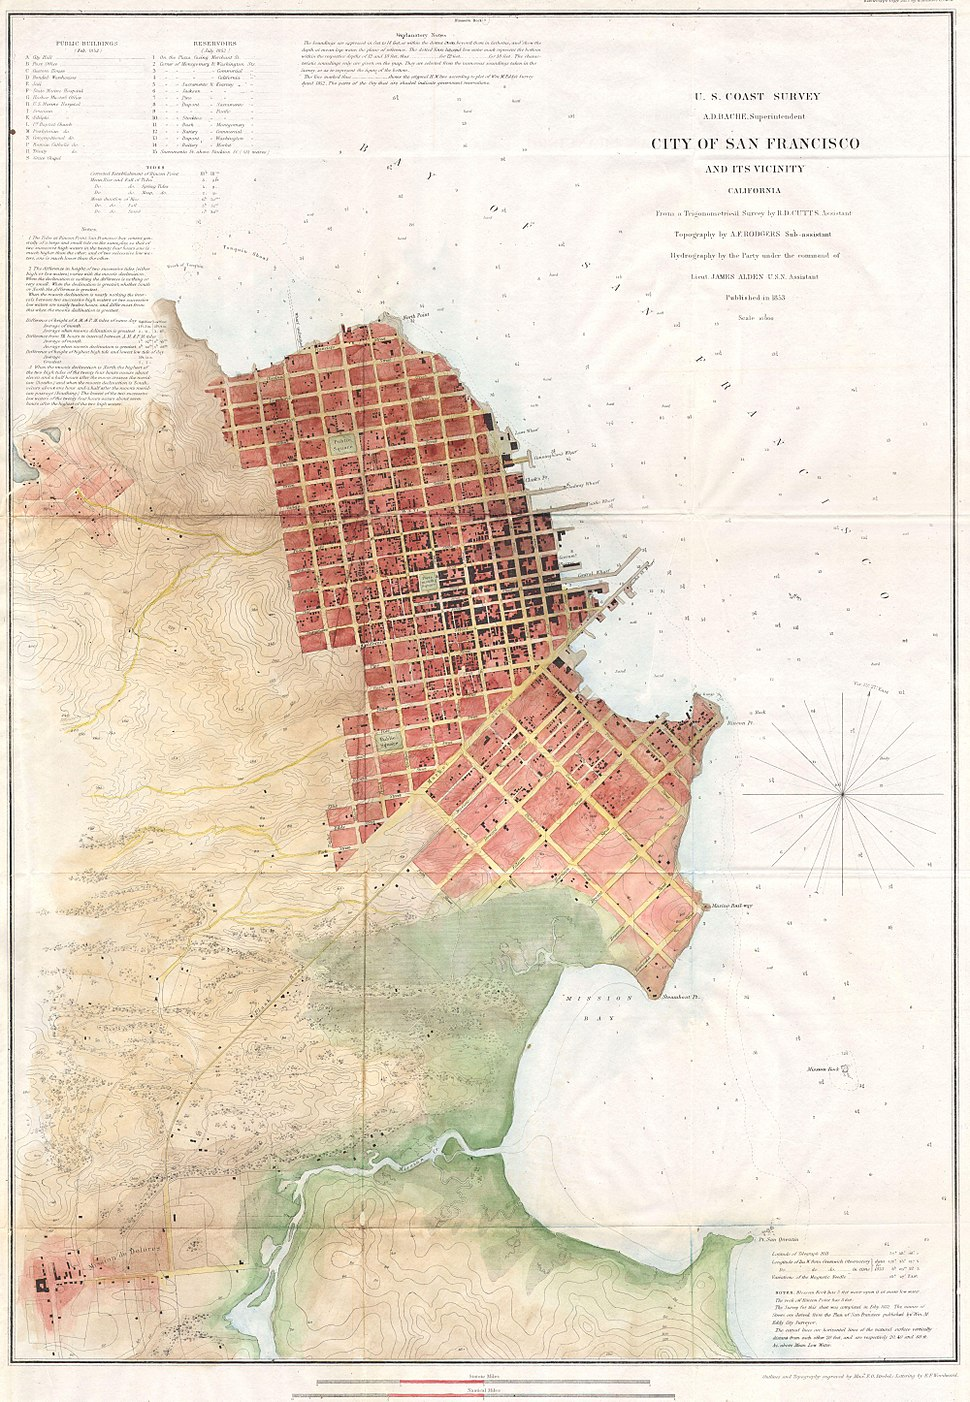 1853 U.S.C.S. Map of San Francisco, California %5E Vicinity - Geographicus - SanFrancisco3-uscs-1853